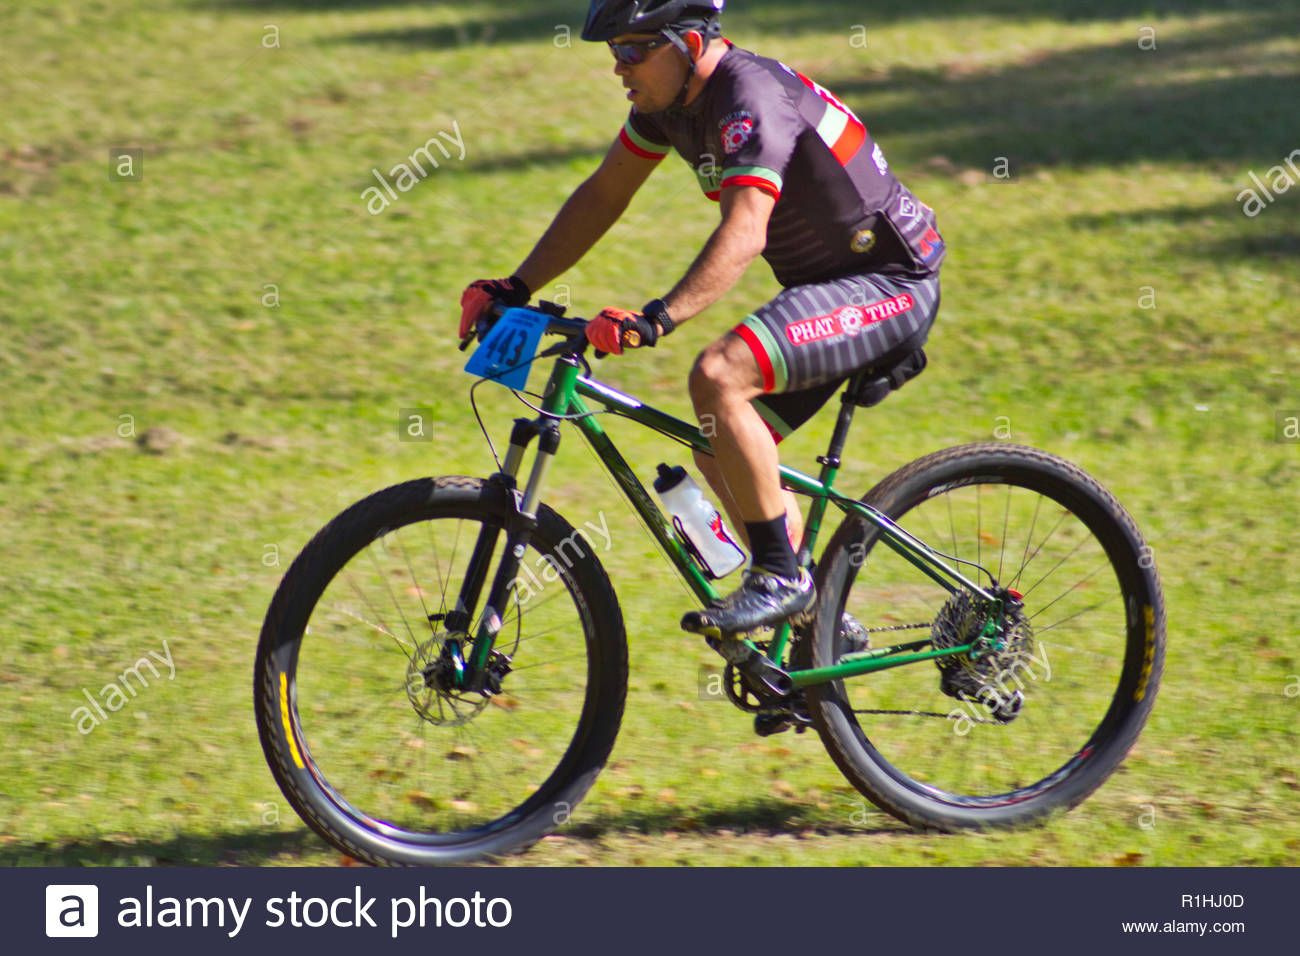 Mountain bike racers on a sunny day in Arkansas - Stock Image